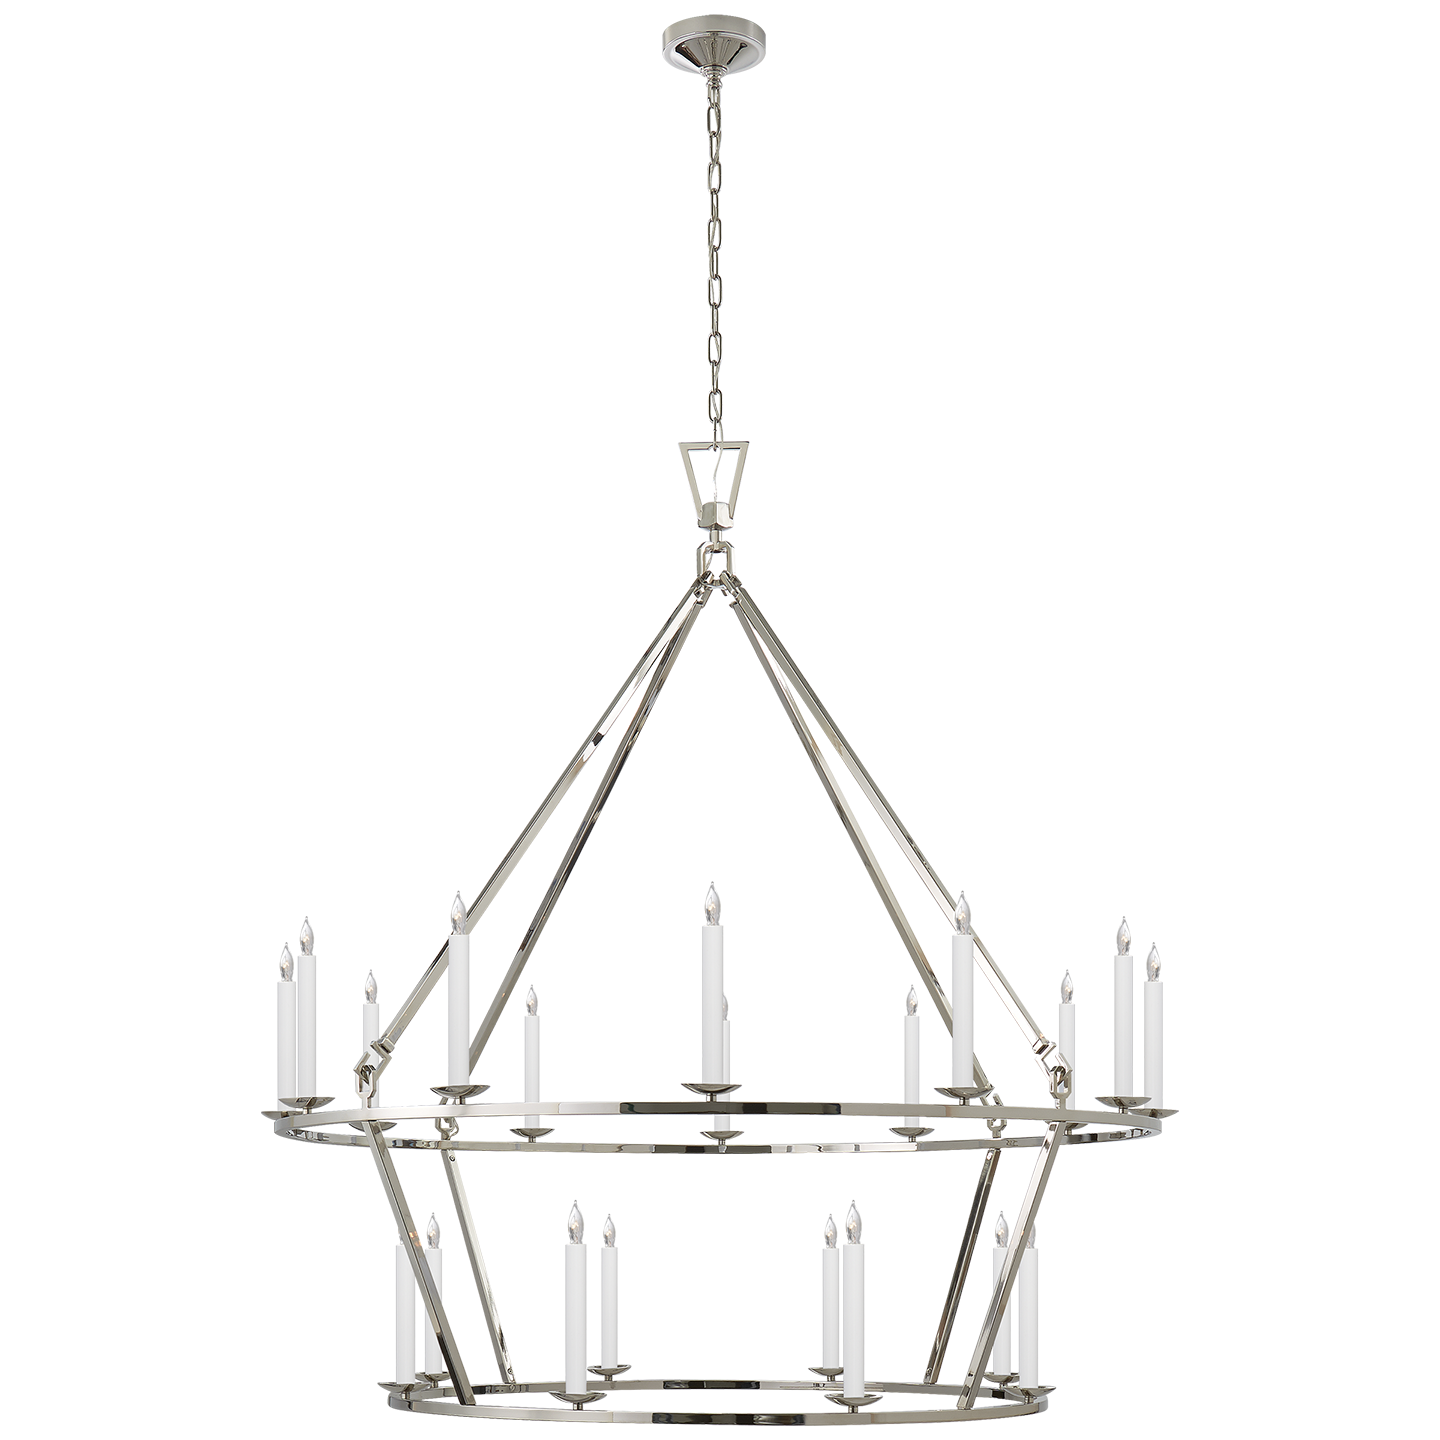 Darlana Extra Two Tier Chandelier in Aged Iron